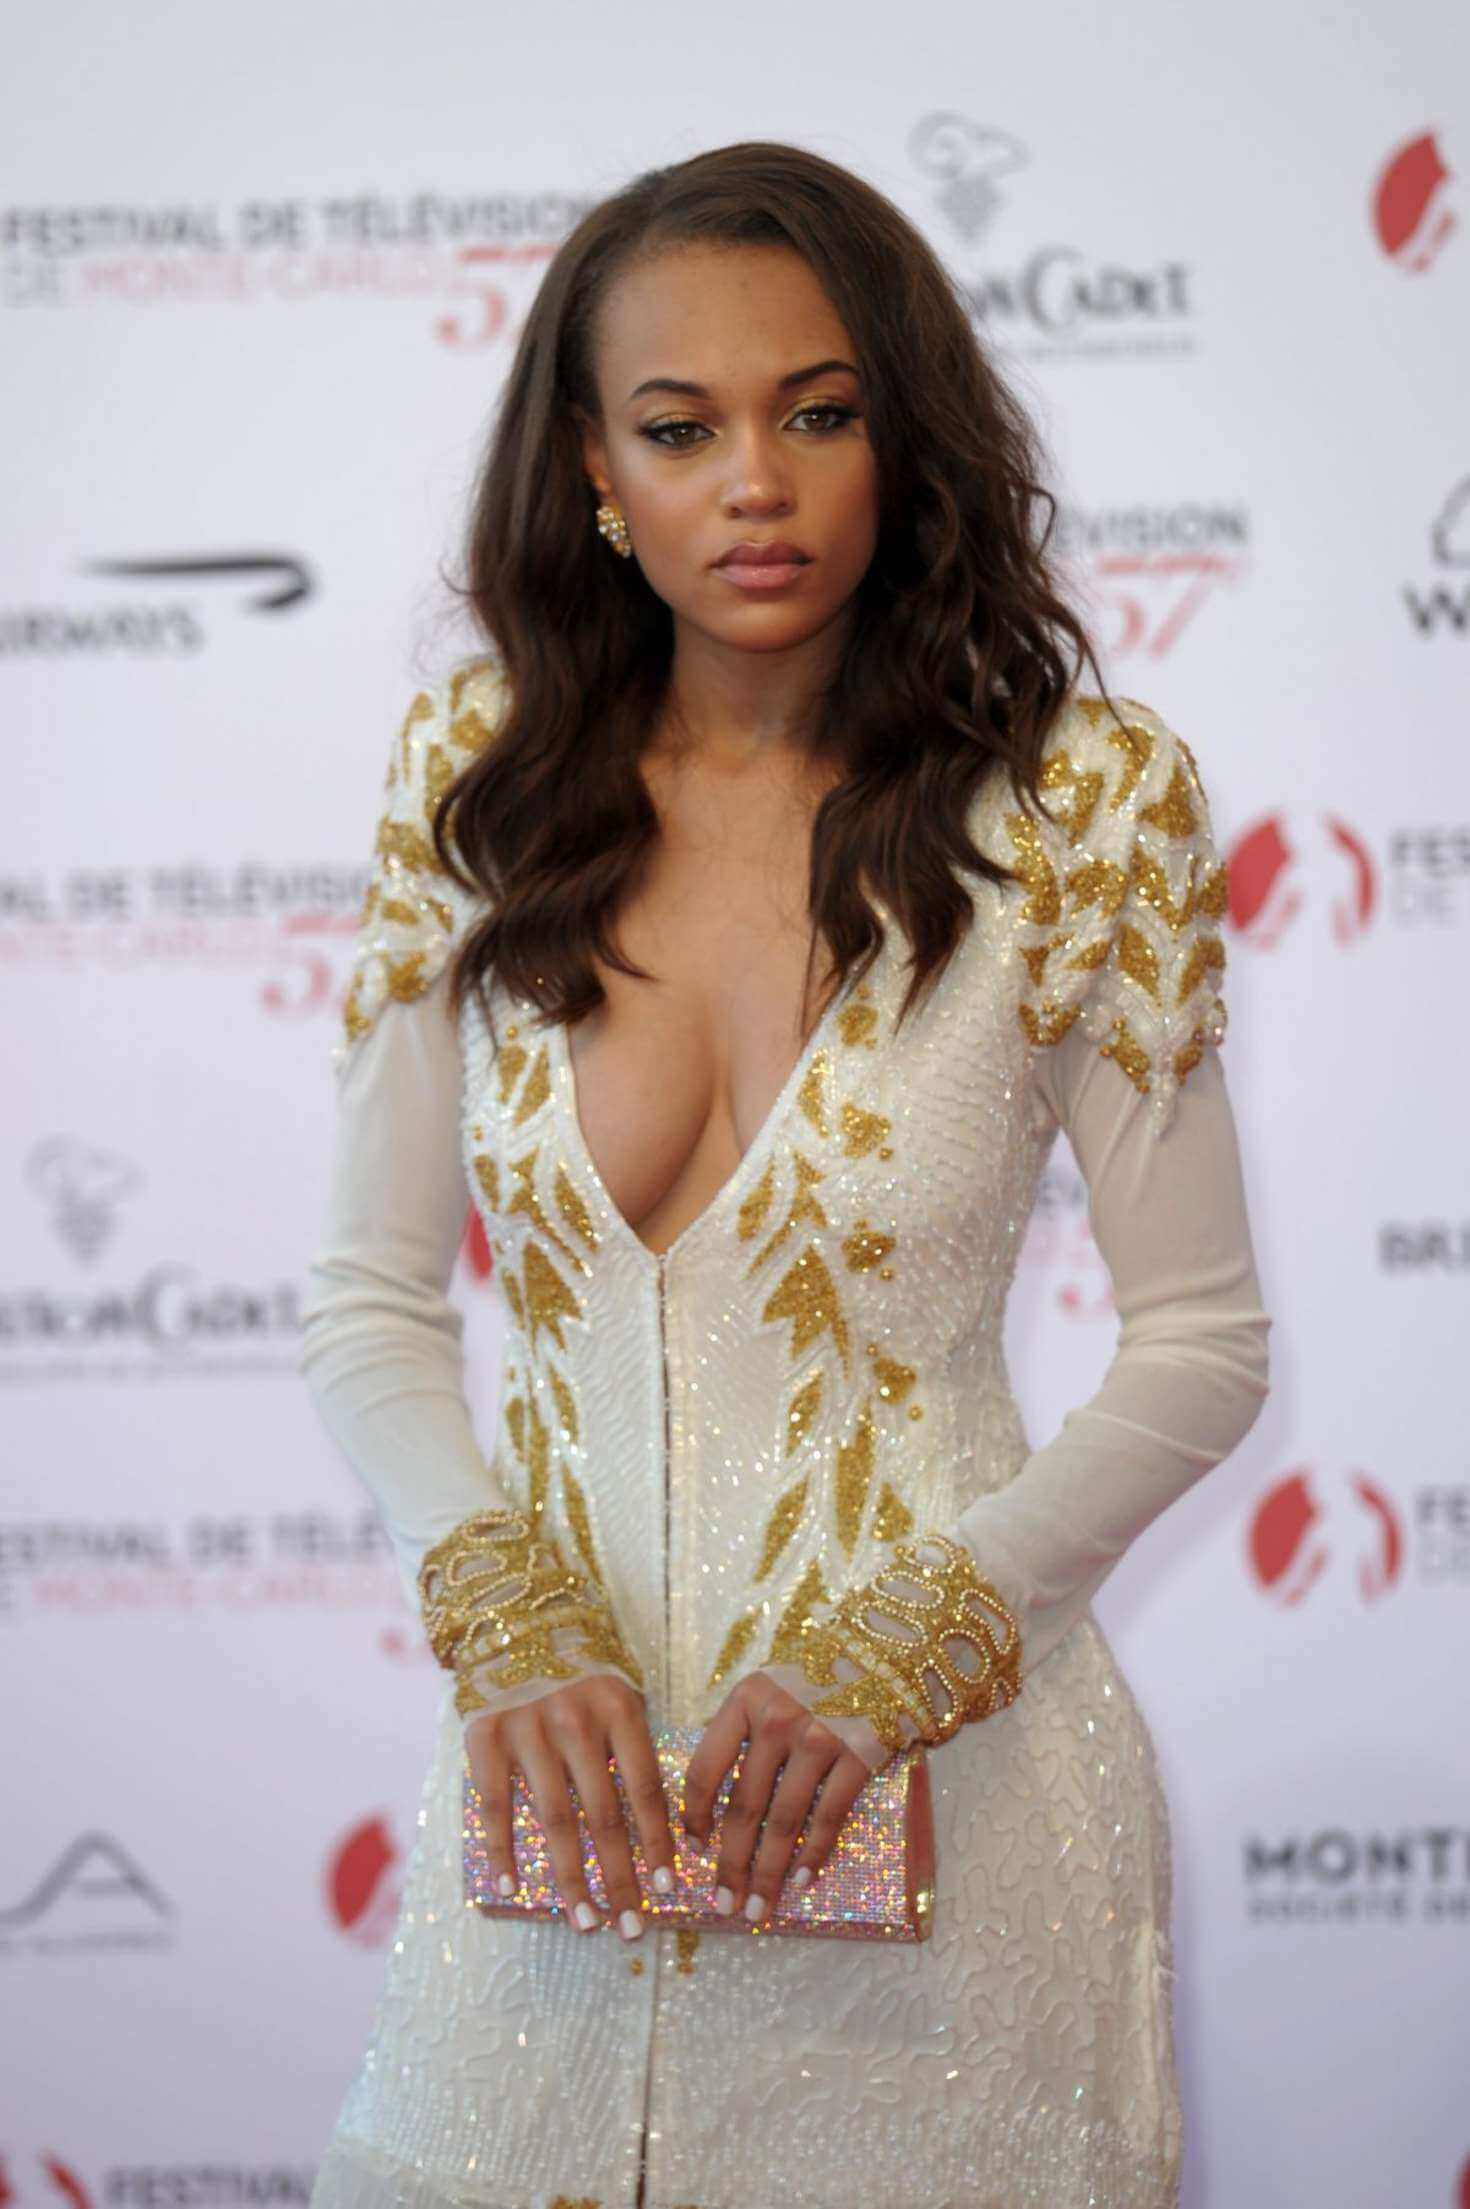 Reign Edwards hot white dress